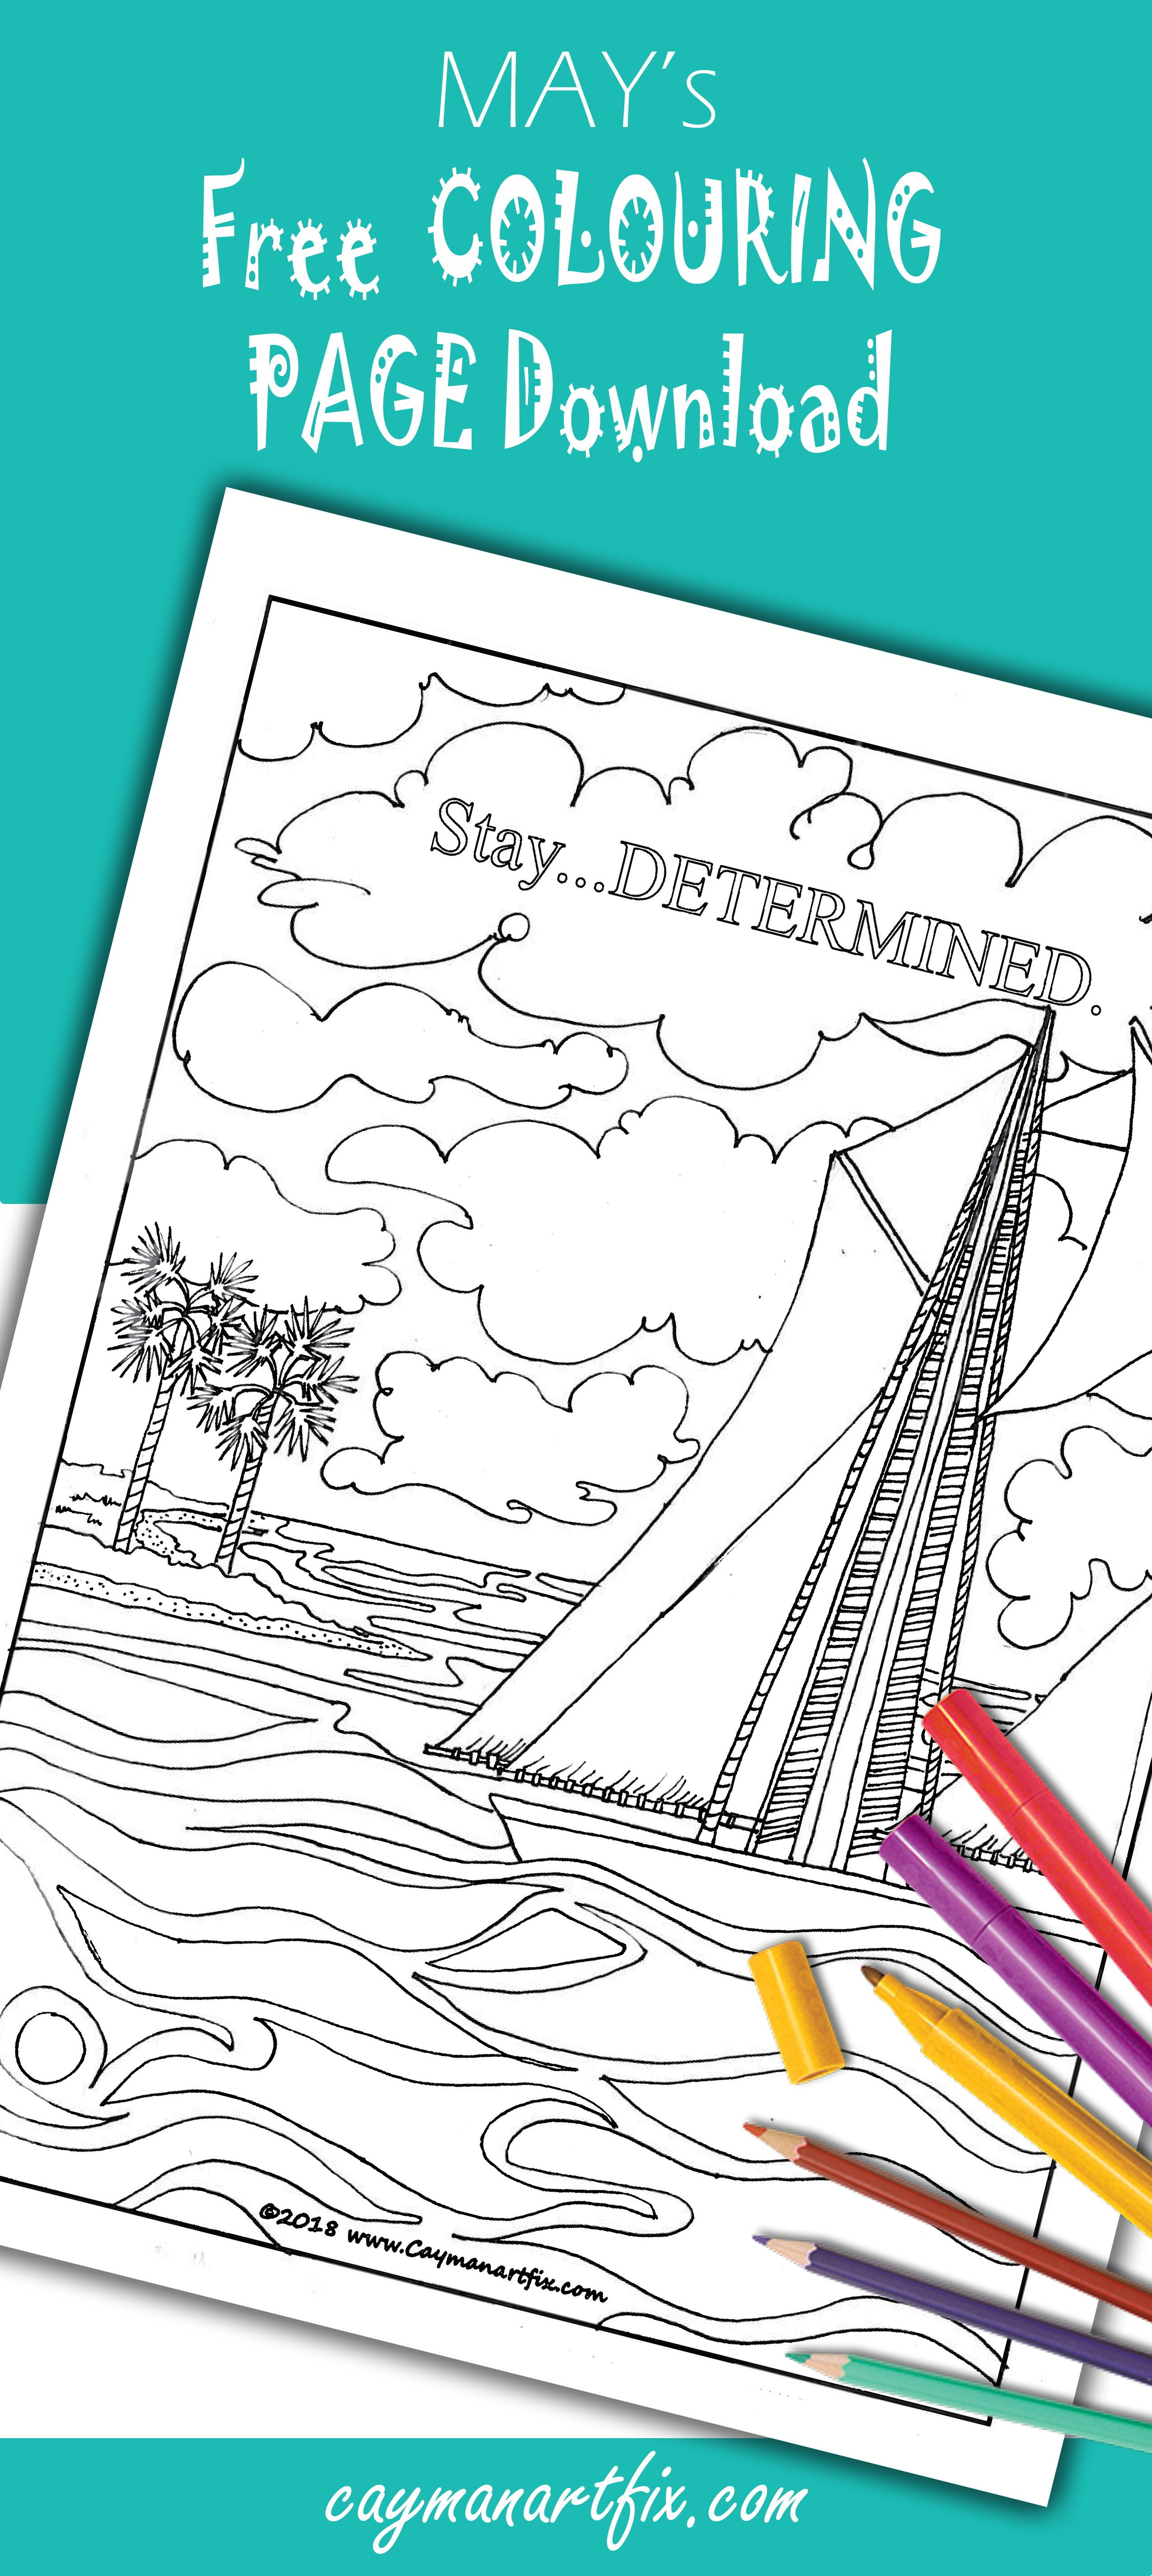 Stay determined with this may colouring page in free coloring